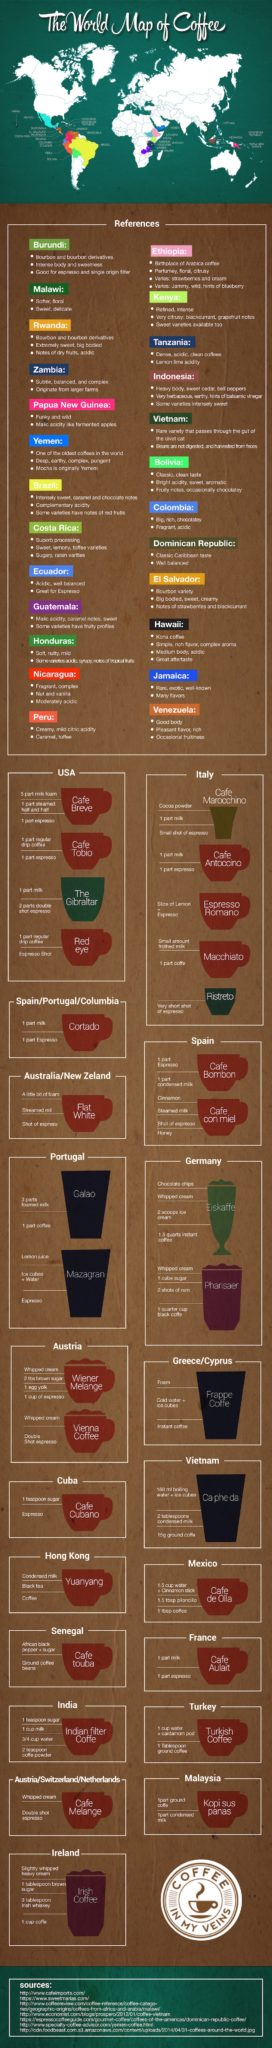 world-map-coffee